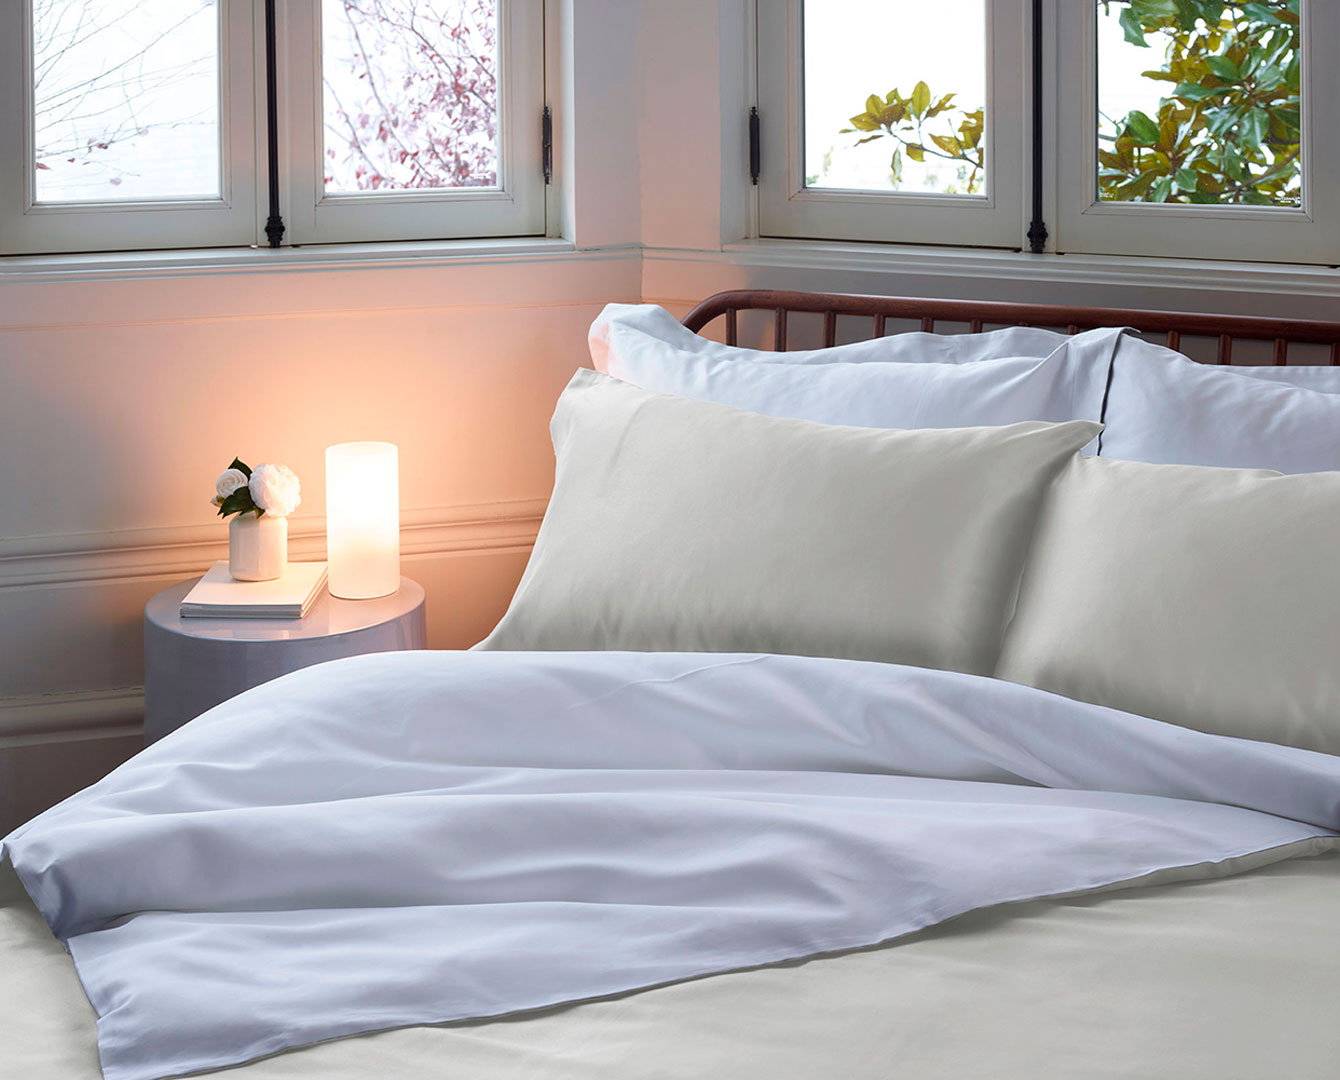 How to perfectly style your bed